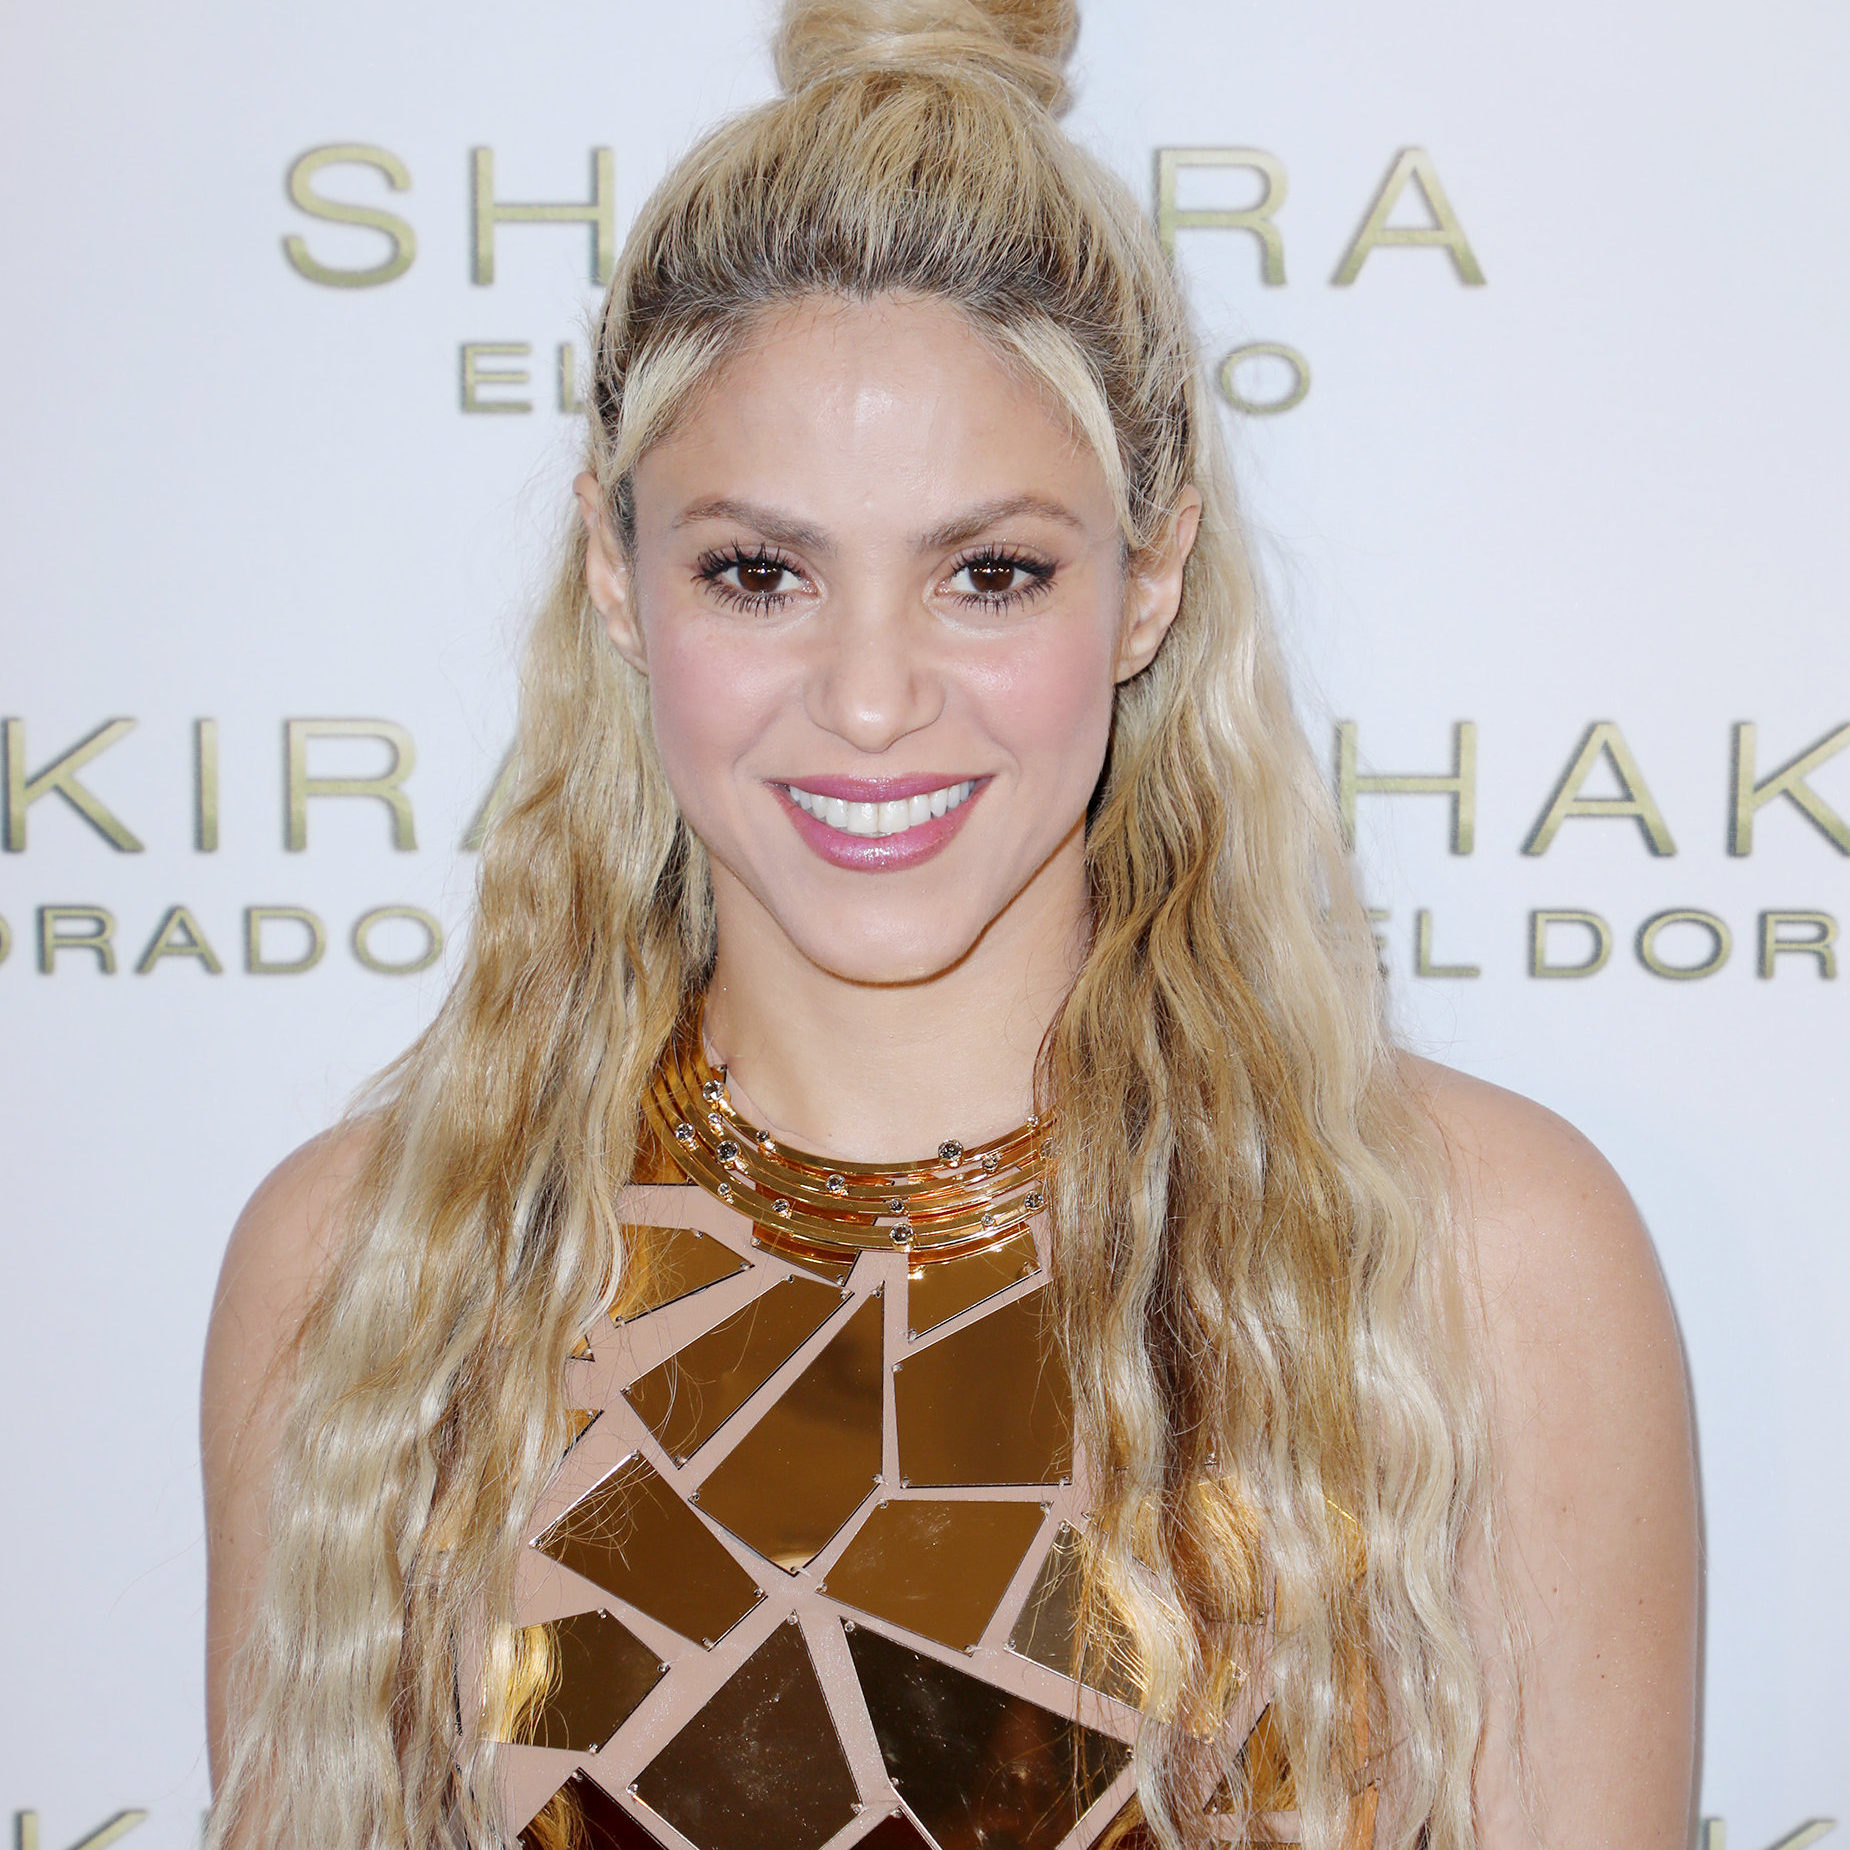 """MIAMI BEACH, FL - MAY 25:  Shakira is seen at her """"El Dorado"""" Album Release Party at The Temple House on May 25, 2017 in Miami, Florida.  (Photo by Alexander Tamargo/Getty Images)"""